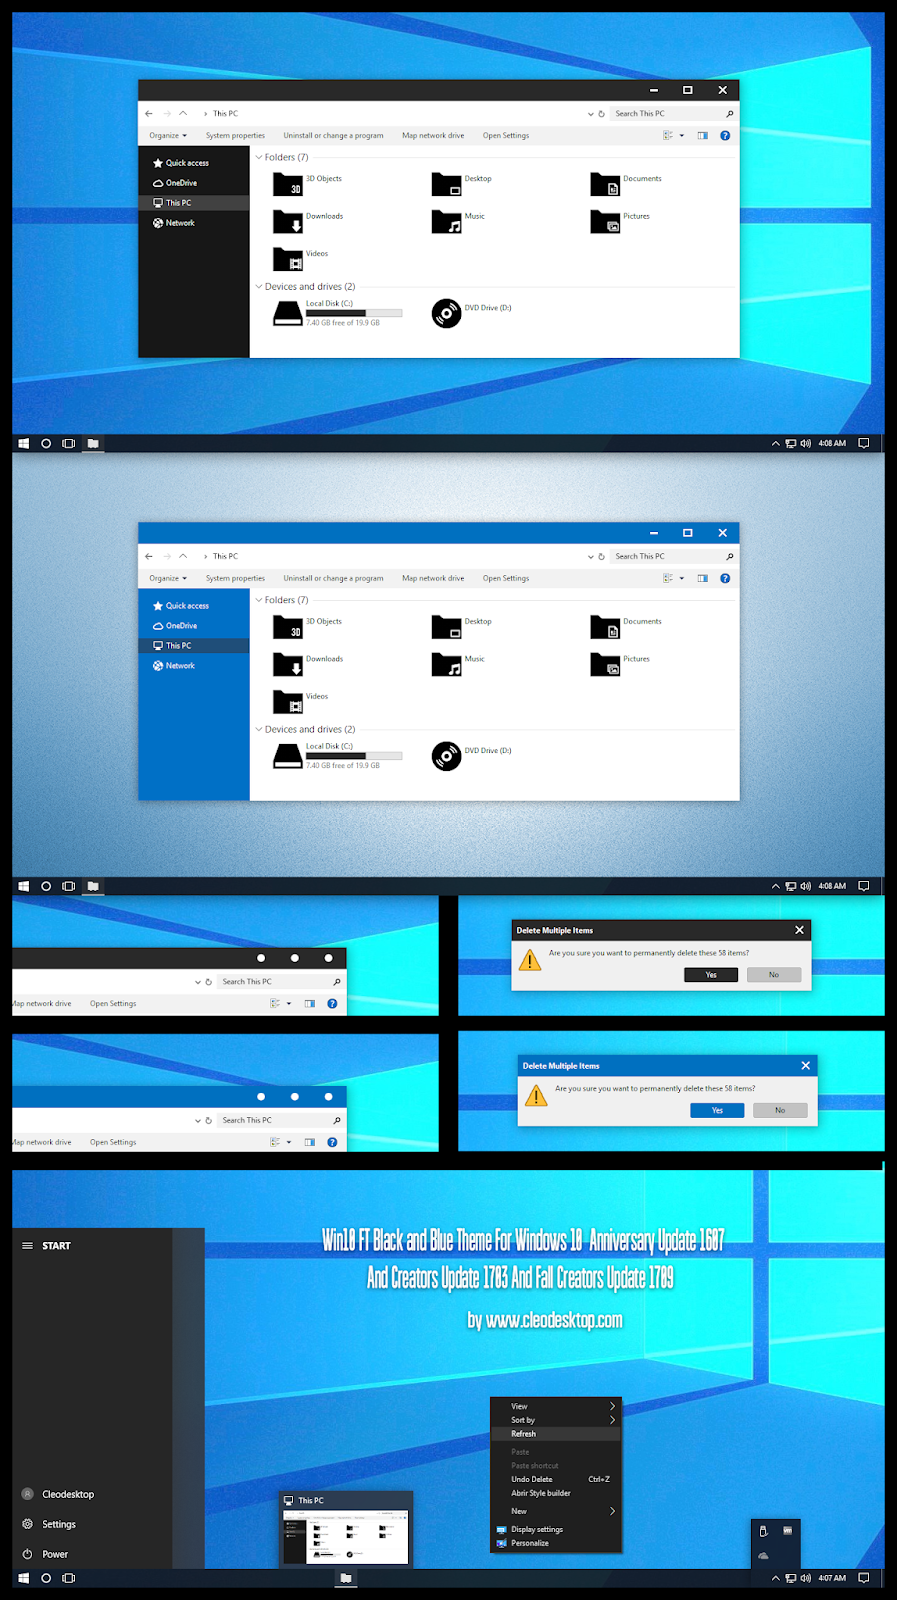 Windows10 Themes I Cleodesktop: Win10 FT Black and Blue